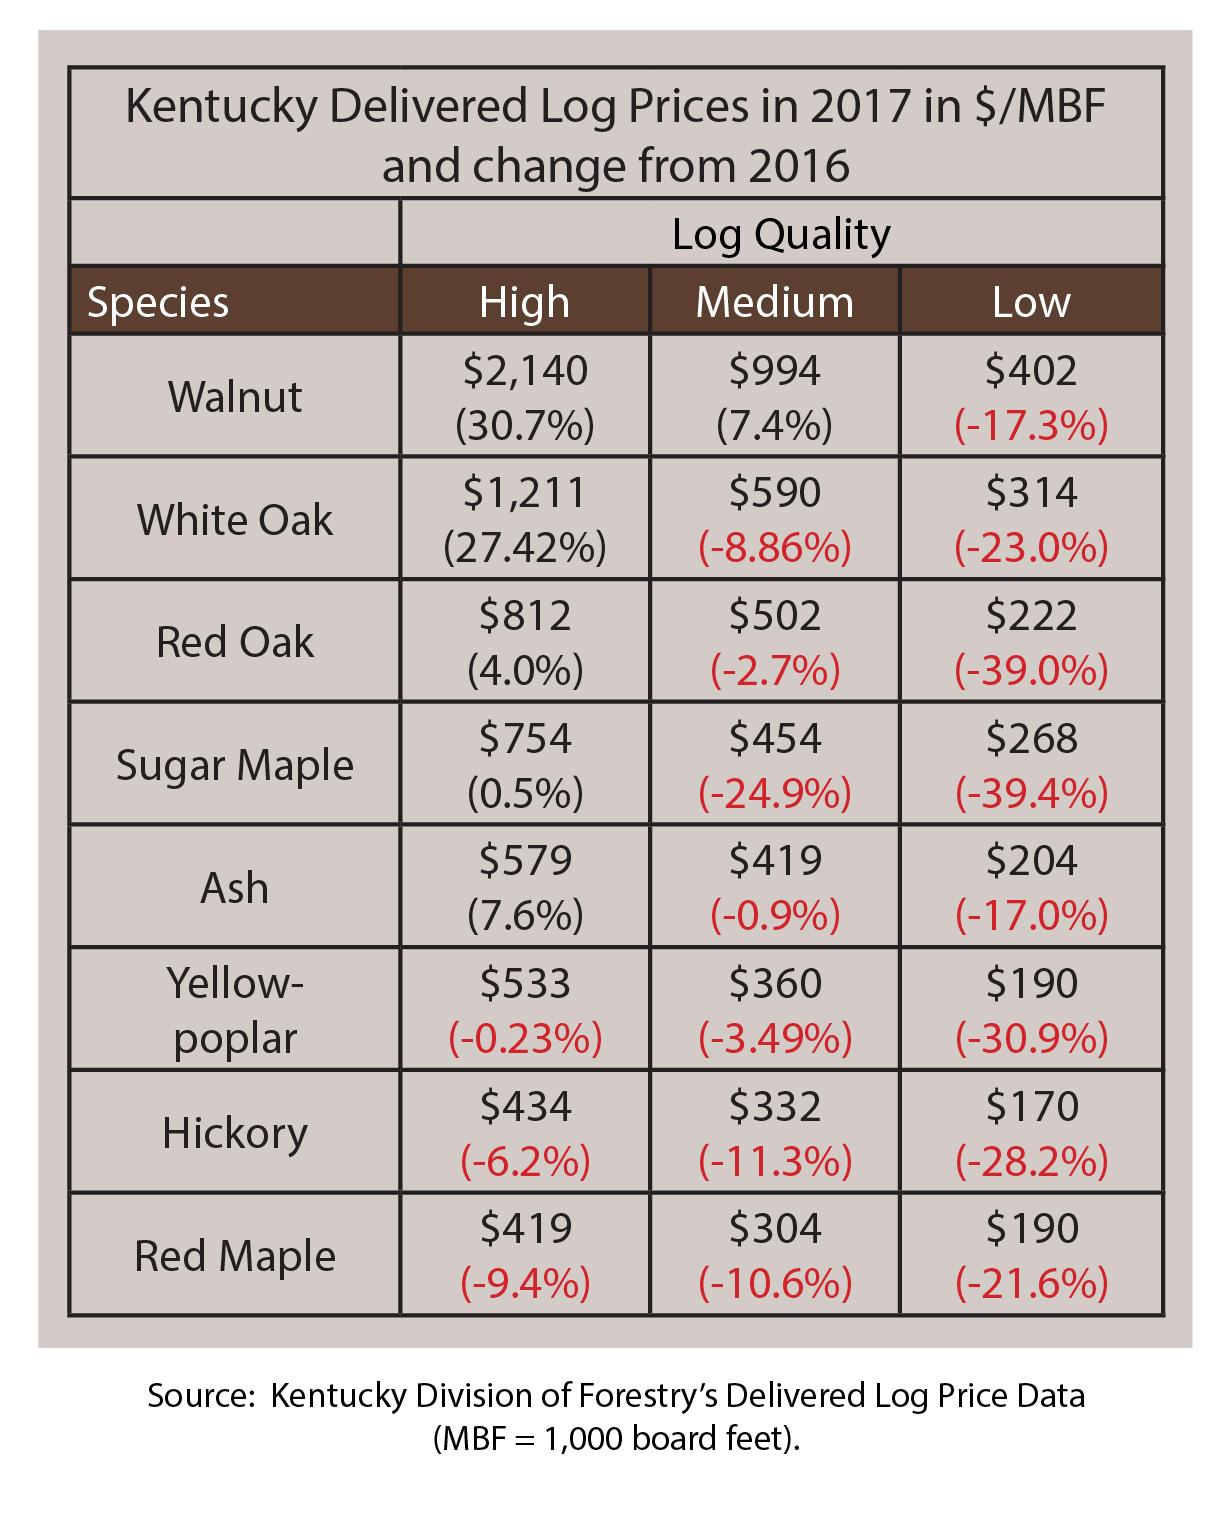 KY Delivered Log Prices in 2017 in $/MBF and change from 2016